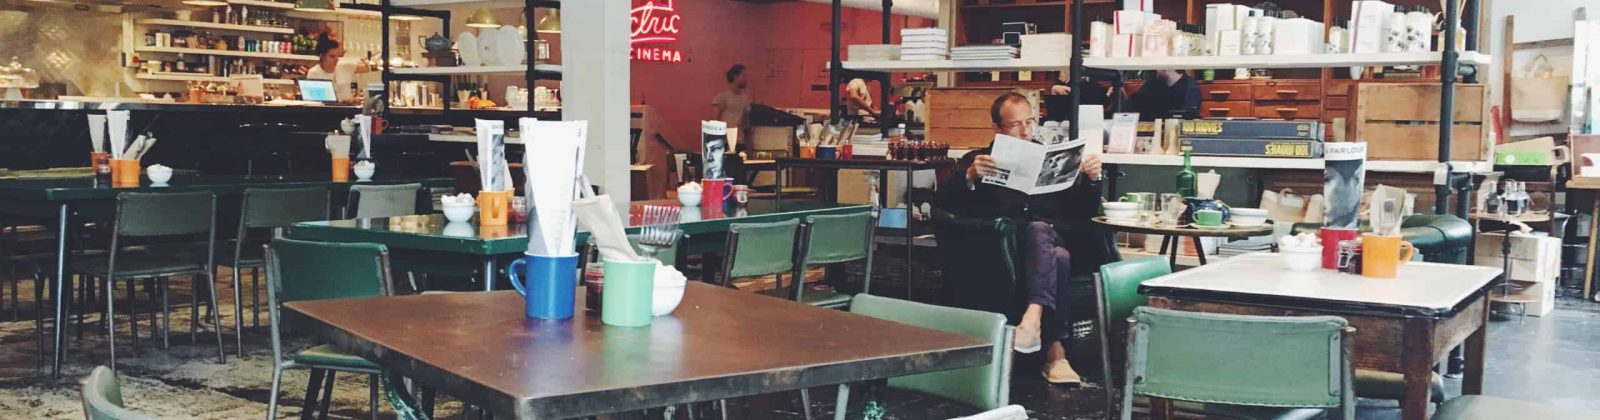 How text marketing can help save the restaurant industry in Pinellas County